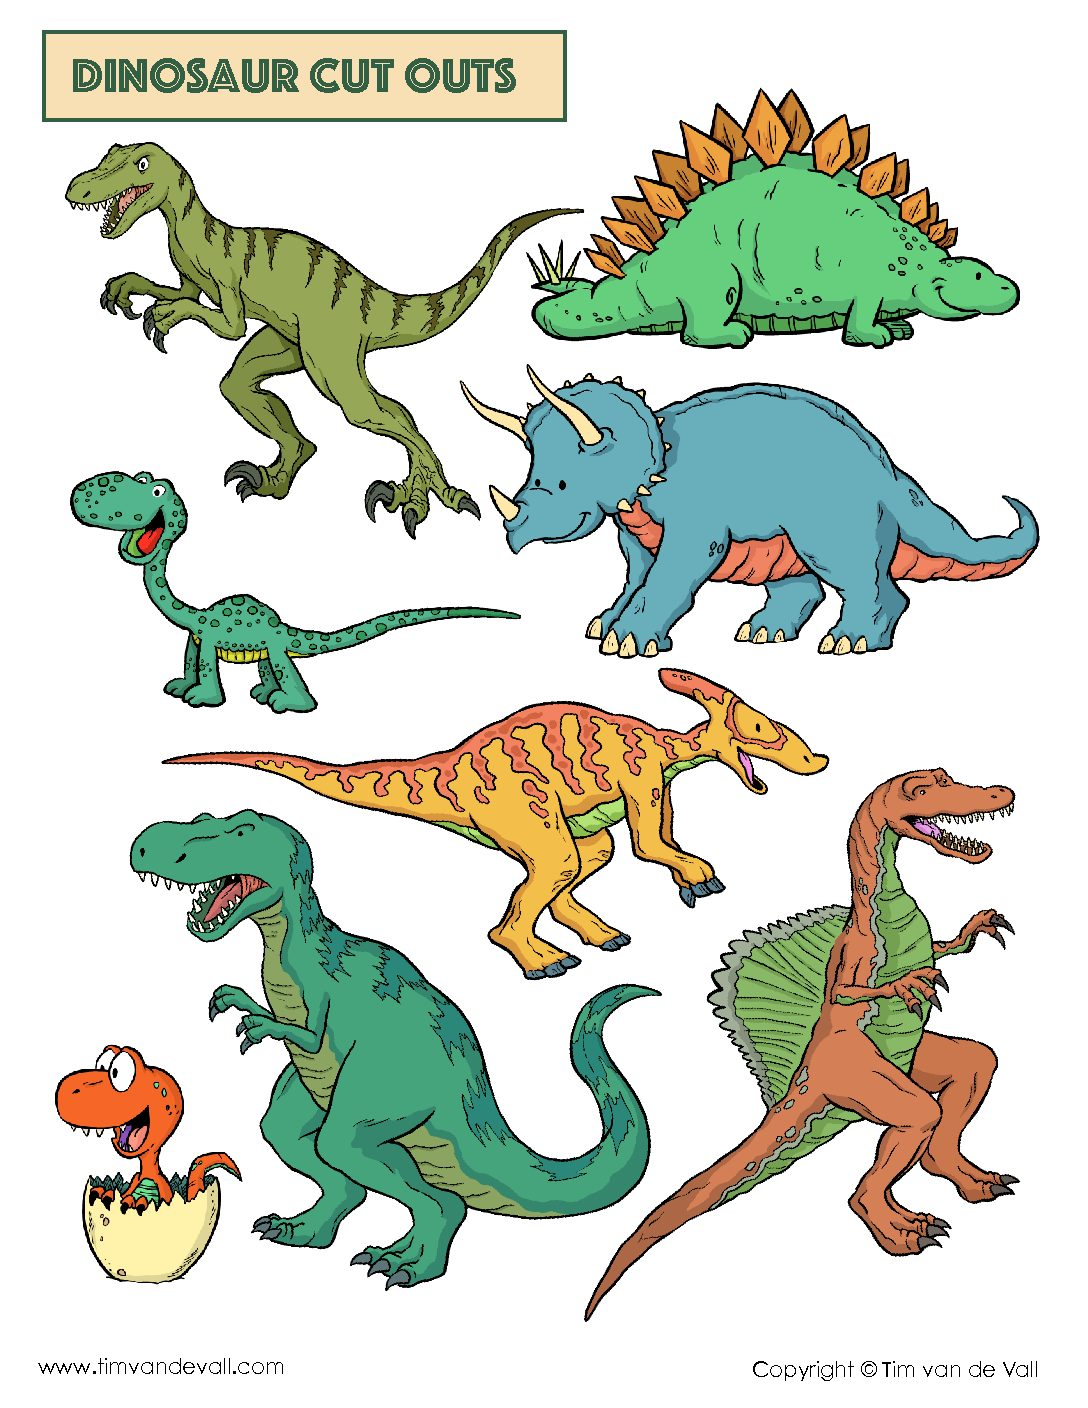 graphic about Dinosaur Cutouts Printable called Free of charge Dinosaur Slash Outs PDF - Dinosaur Arts Crafts - Tims